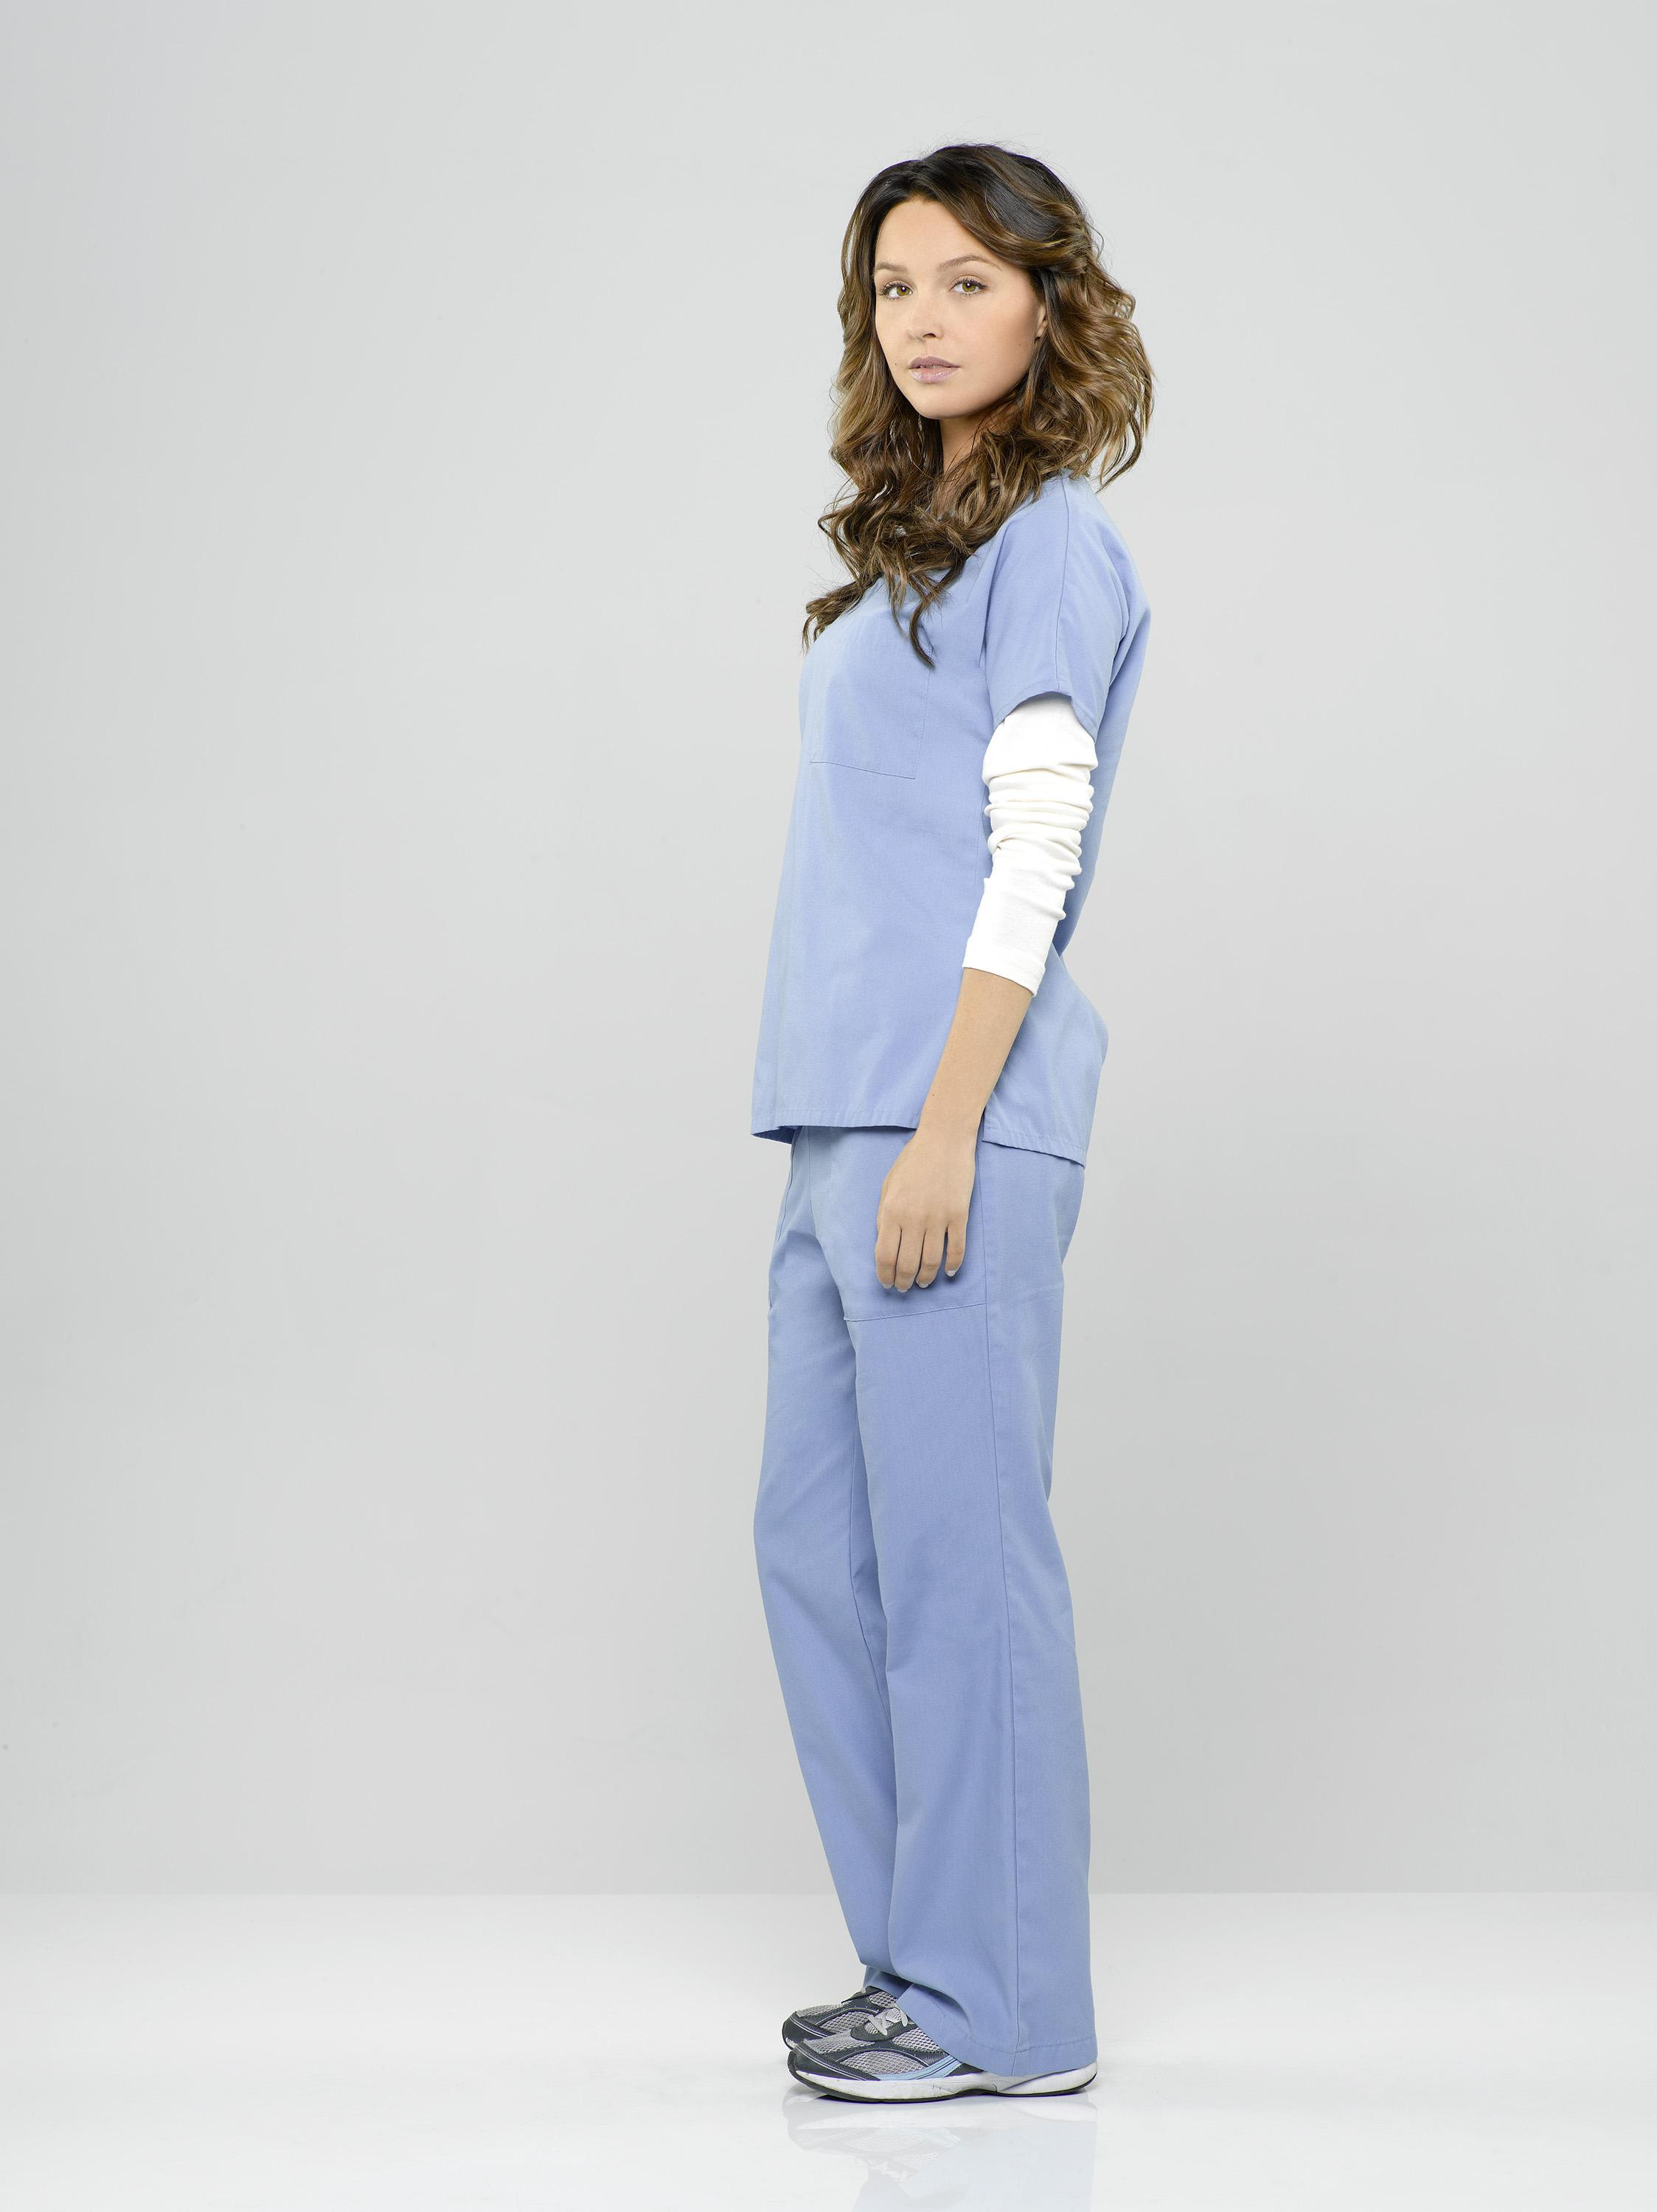 Greys-Anatomy-S10-Camilla-Luddington-1-dvdbash | DVDbash